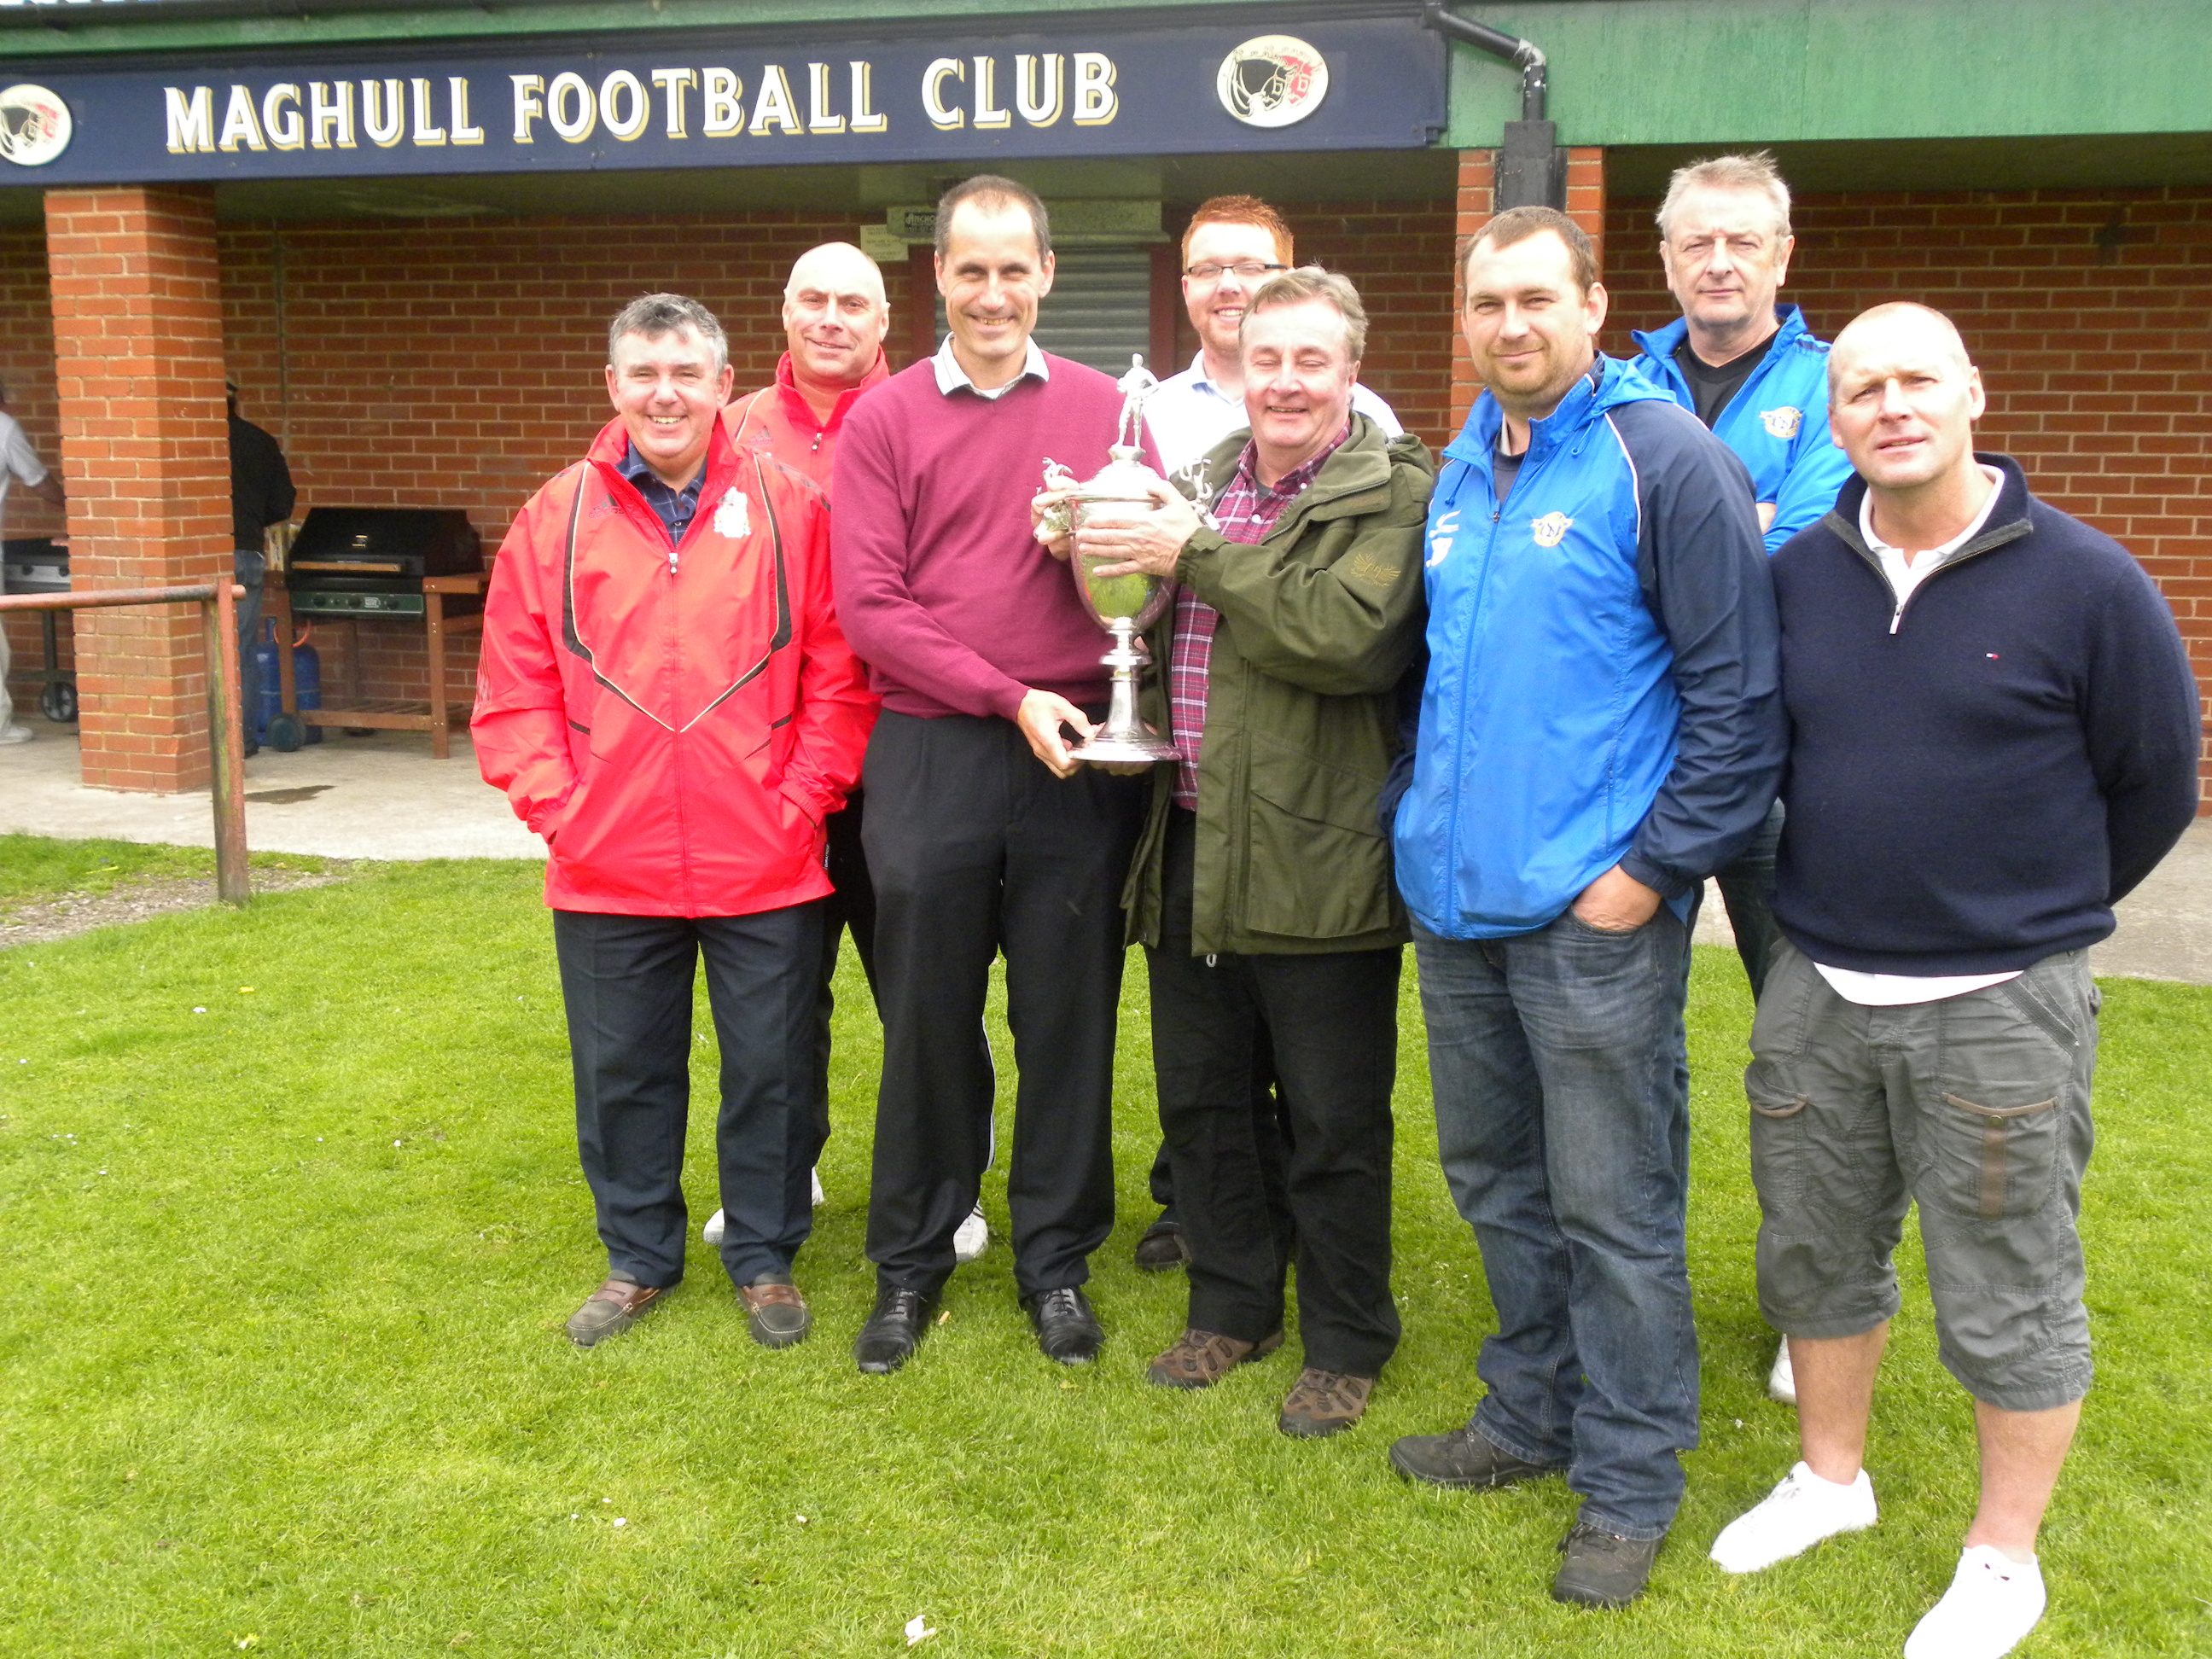 Maghull Labour MP Bill Esterson and Seudell Ward's Cllr Patrick McKinley with Maghull FC's club secretary Bill Buck, financial offier Dave Jones, community officer Adam  Rooney, first team manager John Brownrigg, head of youth football Allan Watkinson and director of football John Mcinnes.